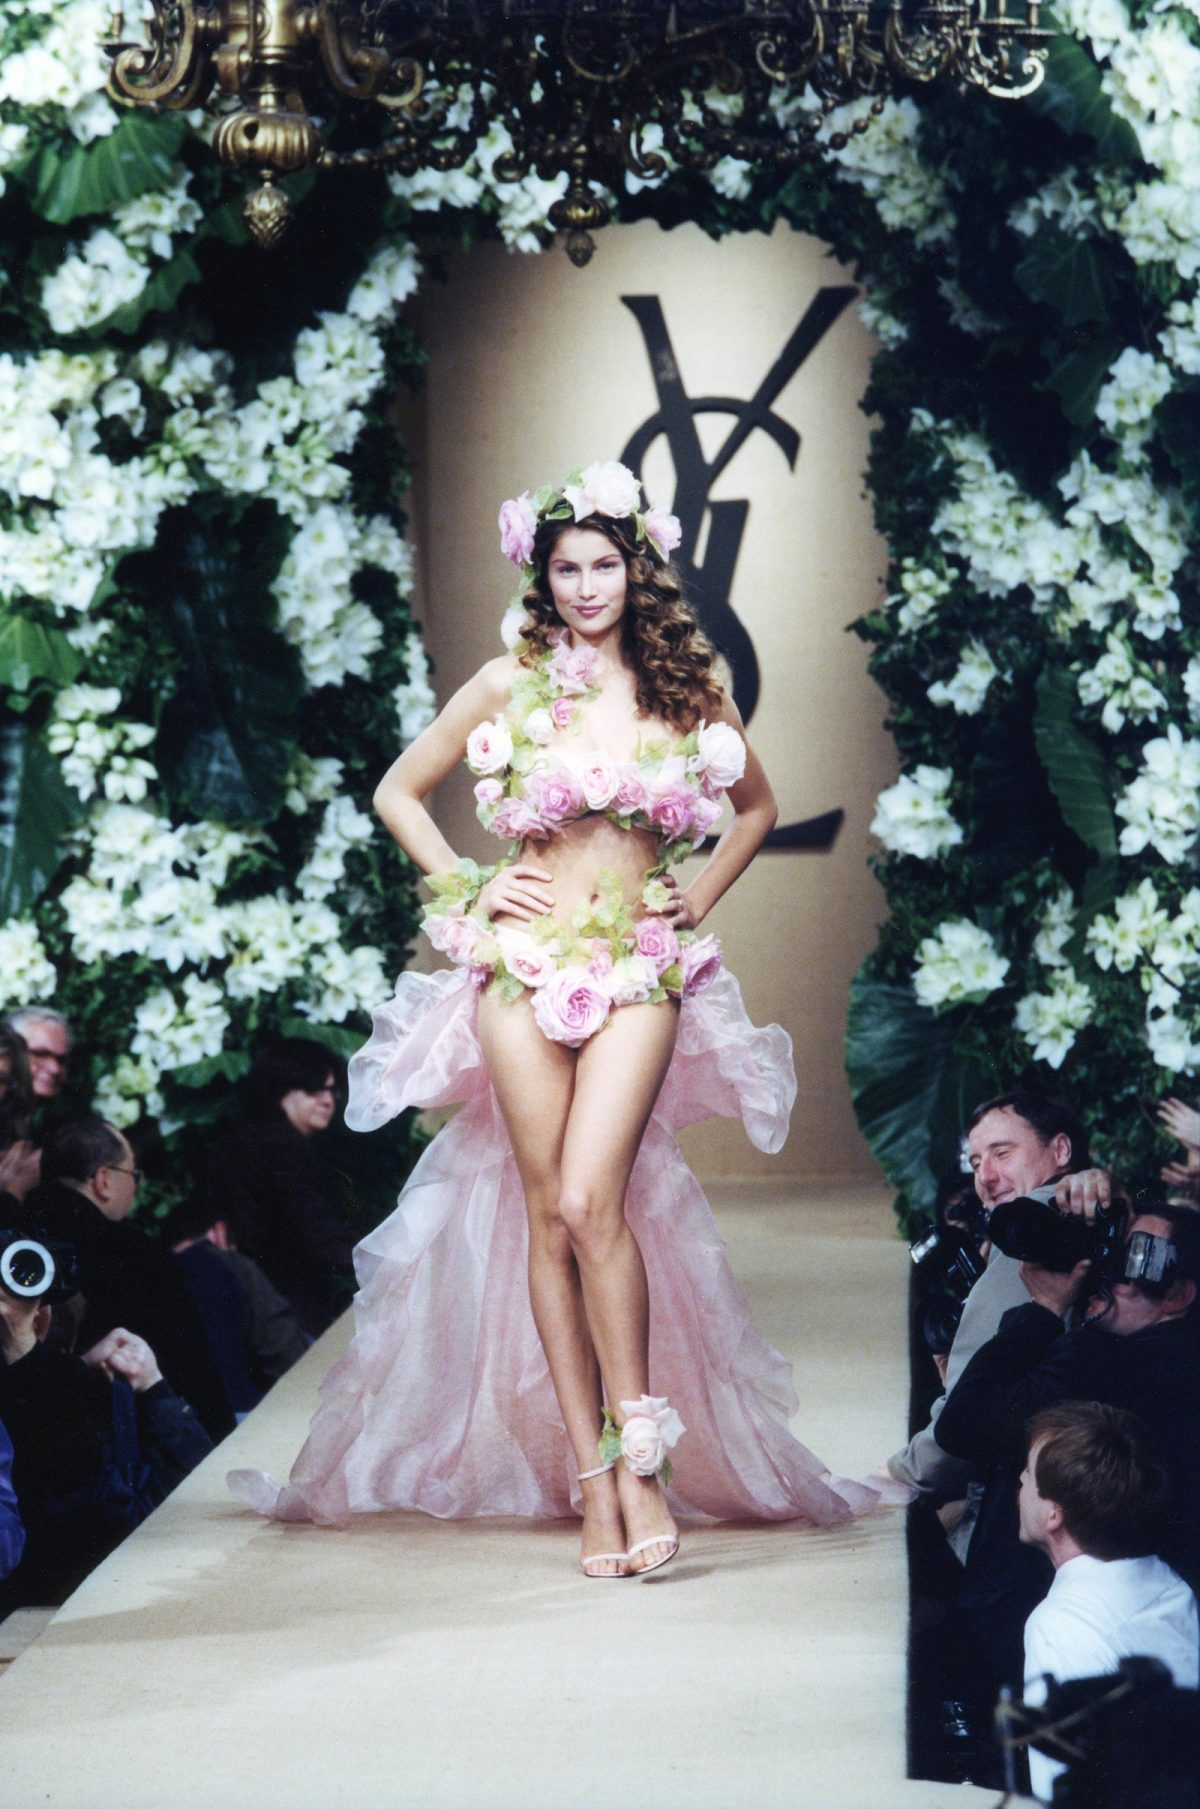 Yves Saint Laurent Spring Summer 1999 couture